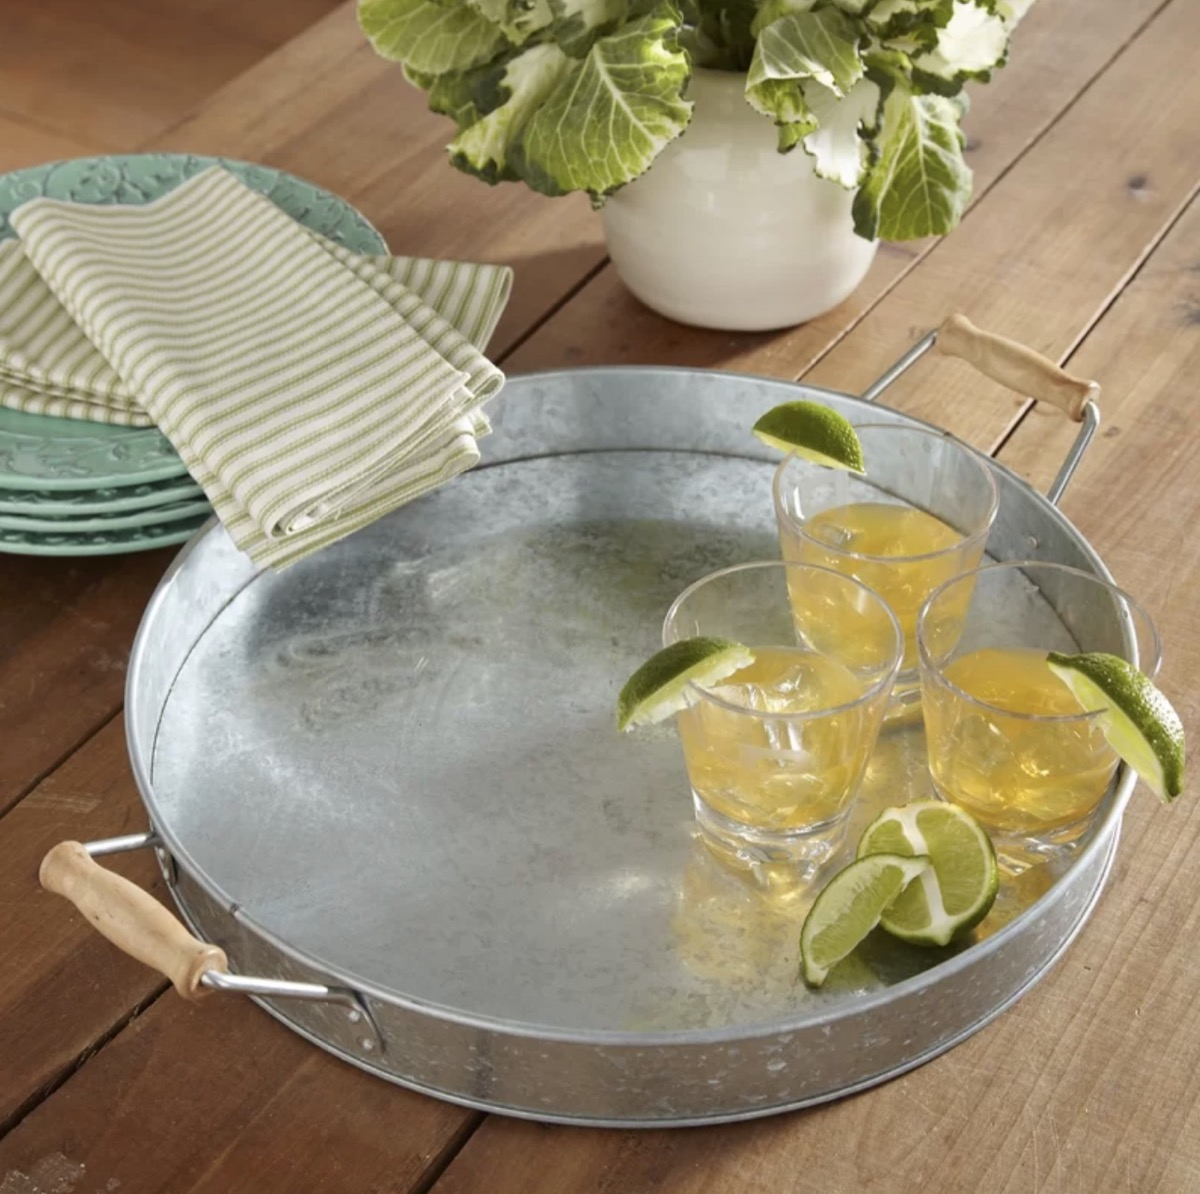 metal tray with wooden handles and cocktails on it, rustic farmhouse decor